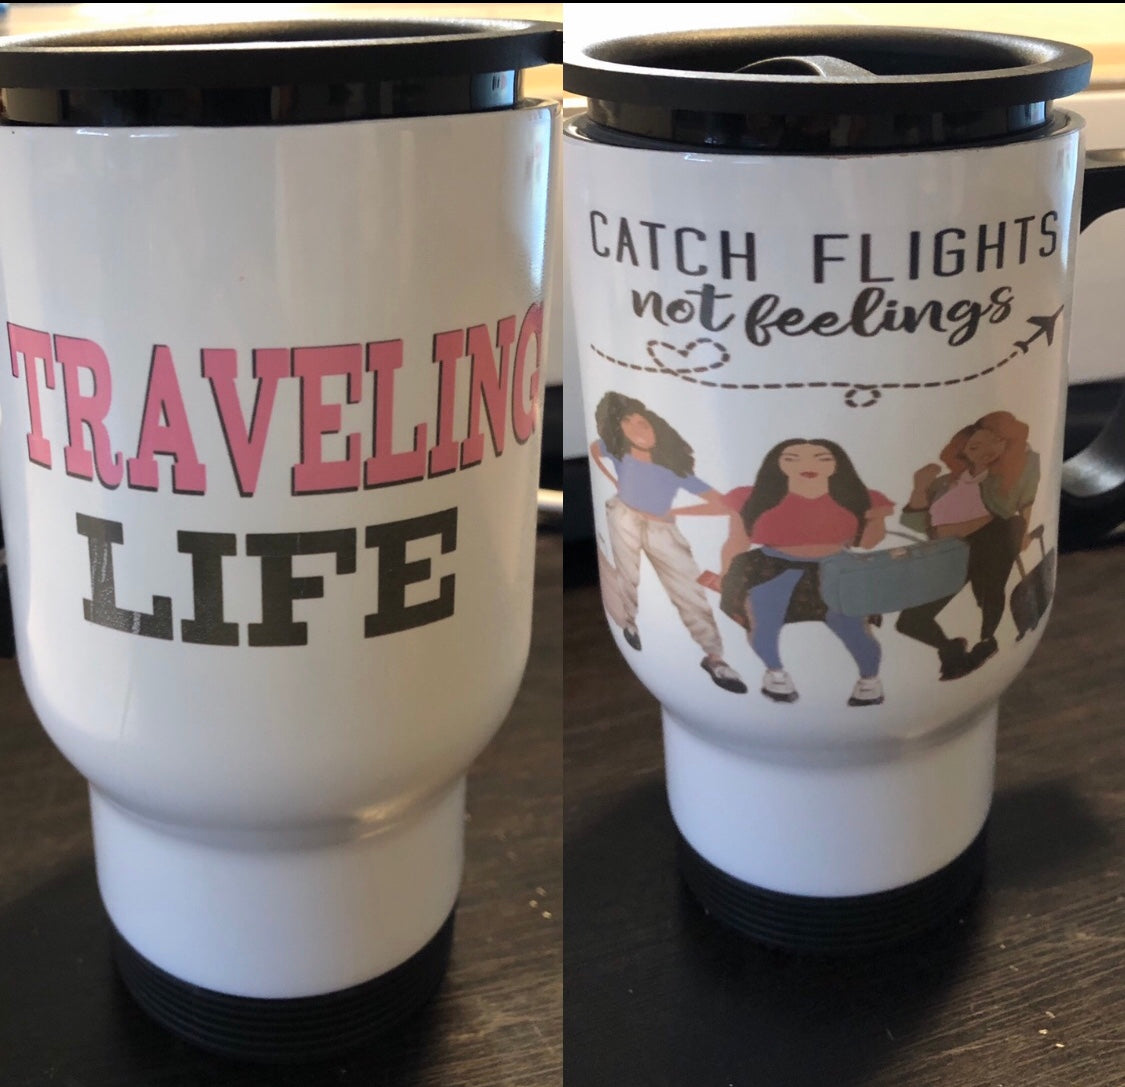 CATCH FLIGHTS NOT FEELINGS TRAVEL MUG